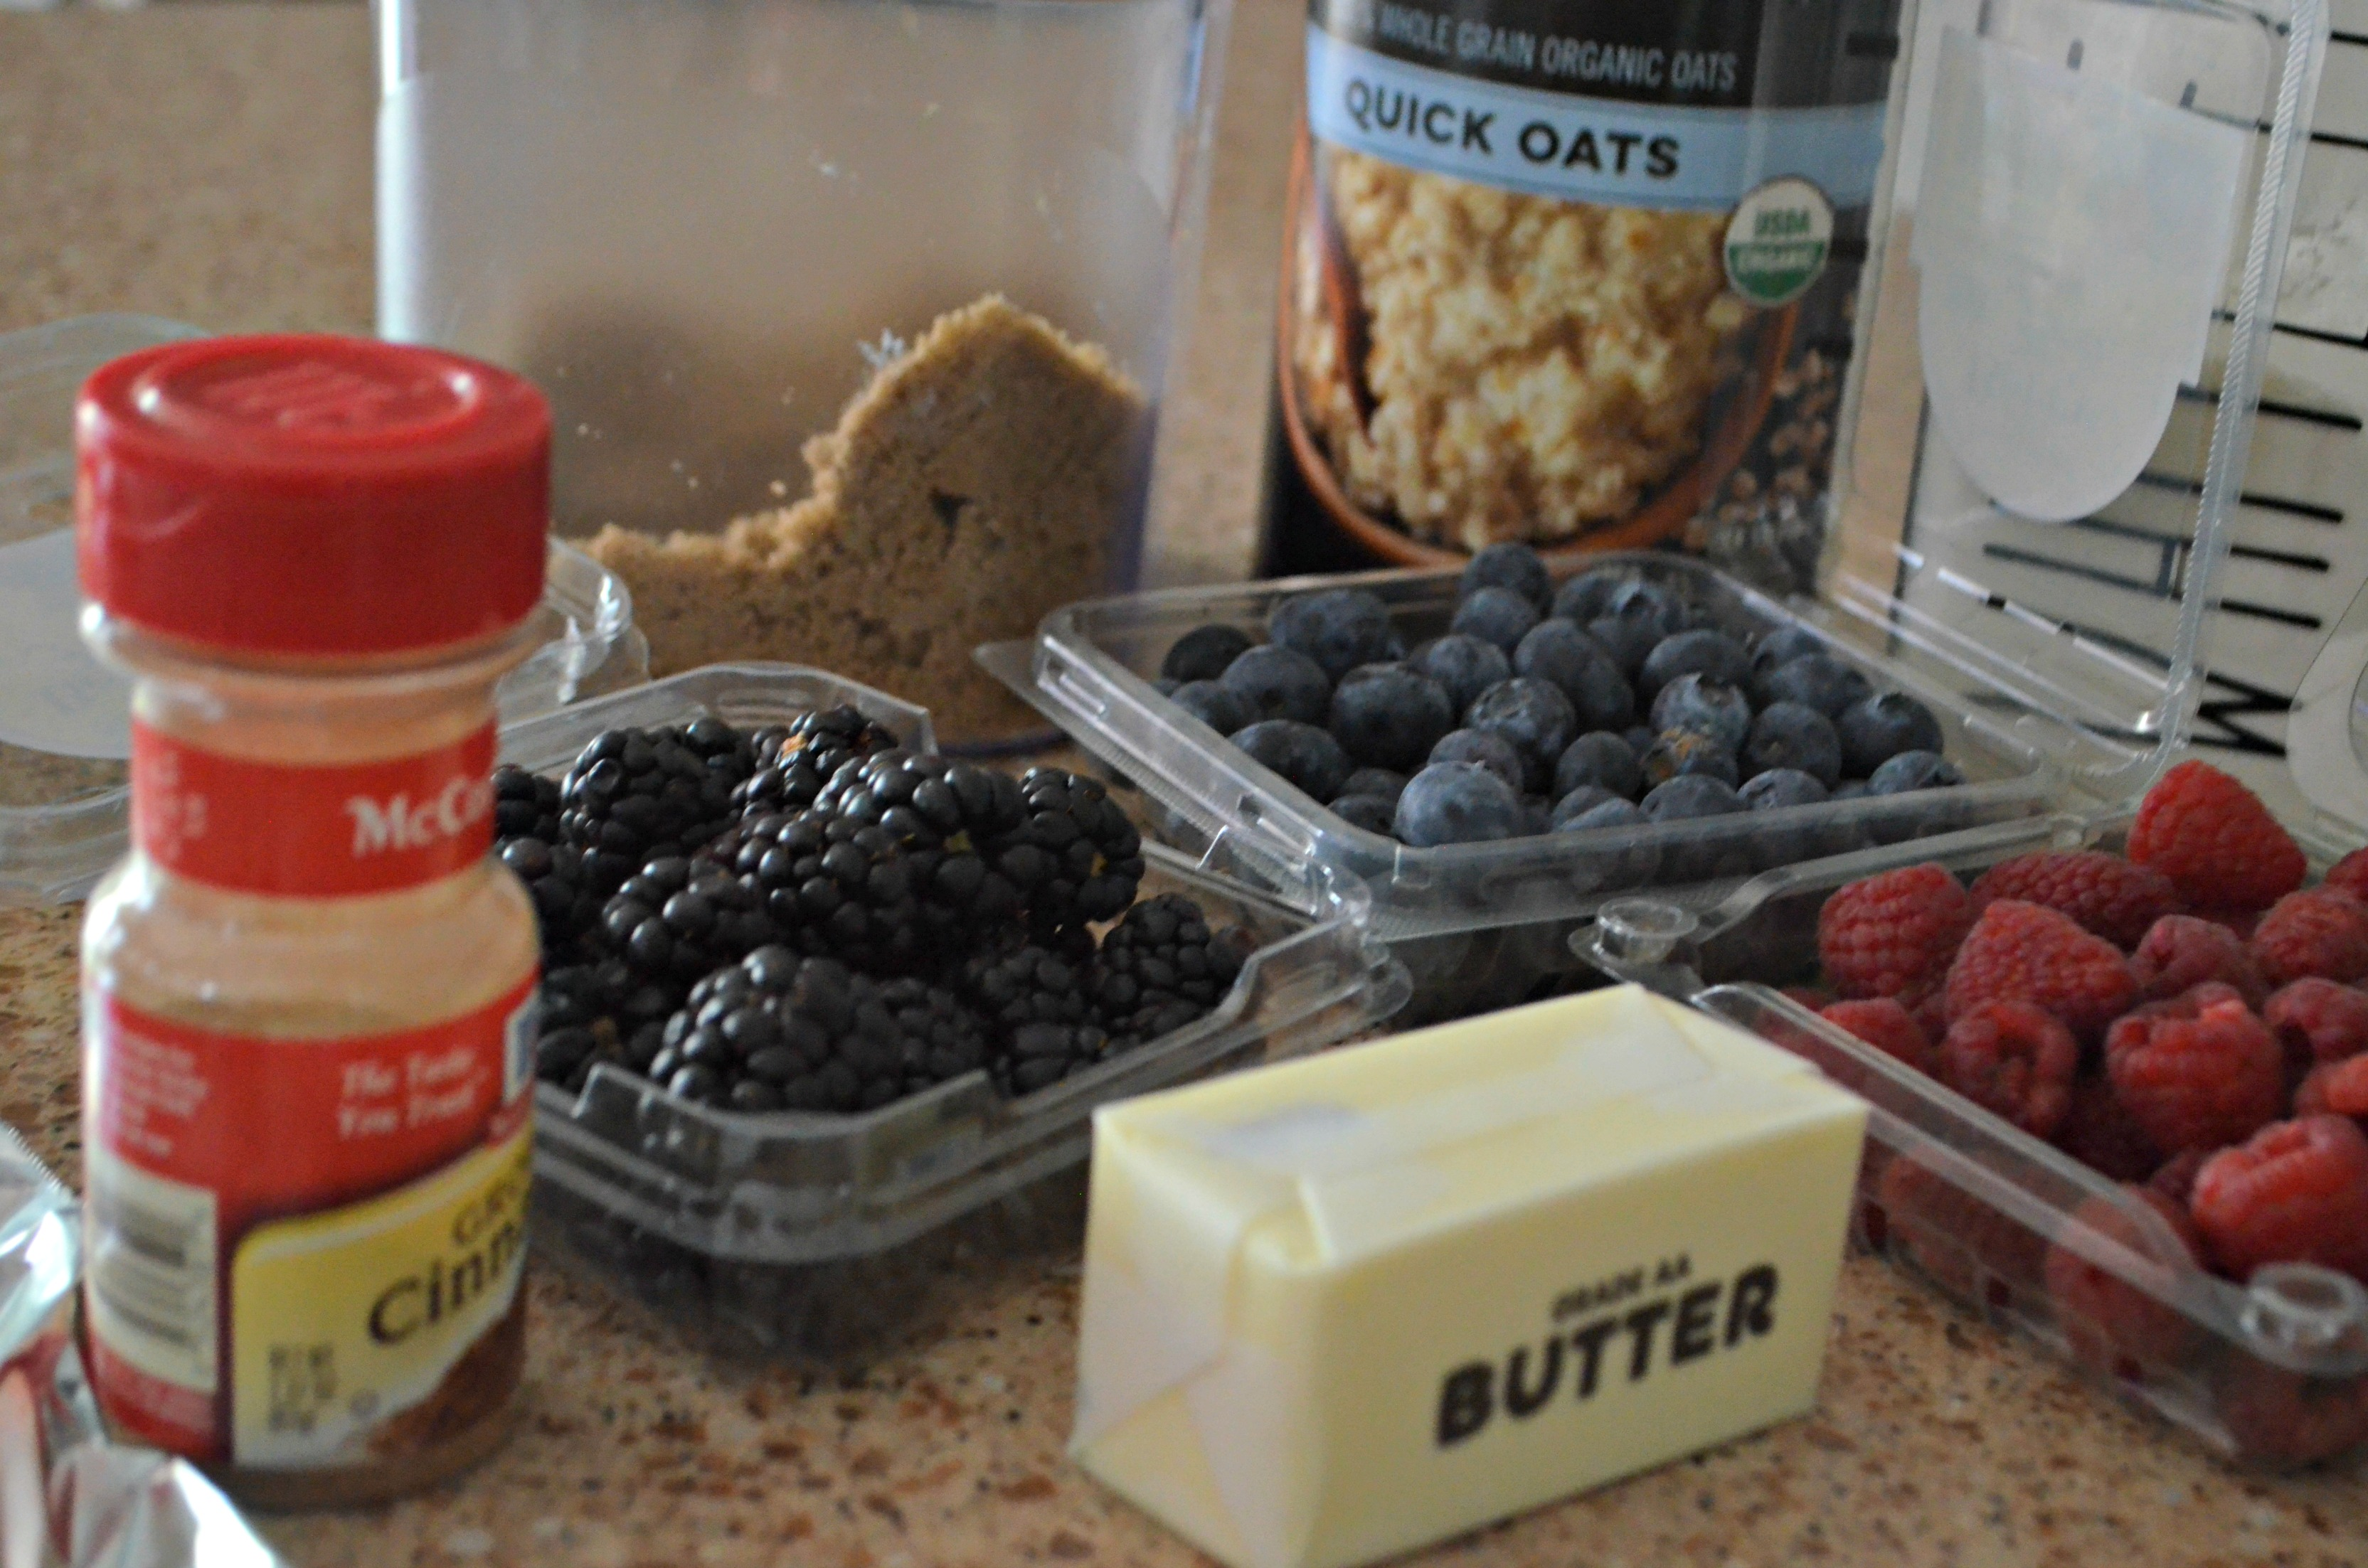 berry crisp packets for grilling or camping – the ingredients